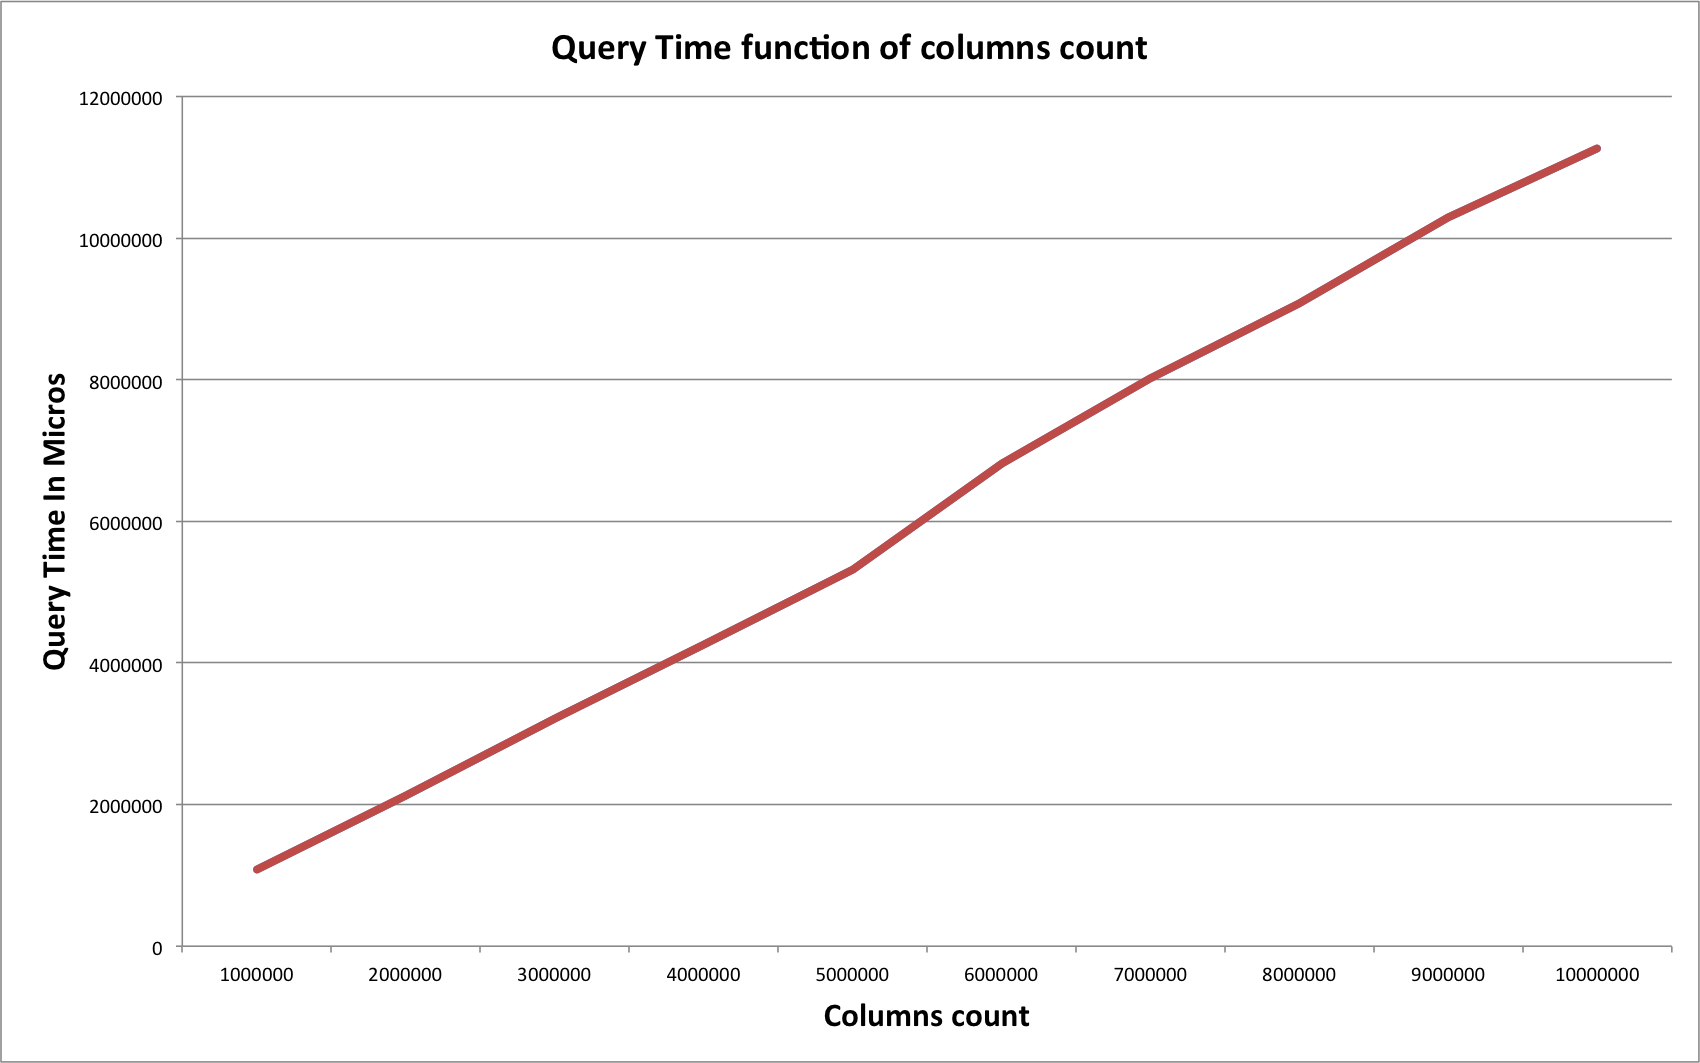 Query Time vs Columns Count